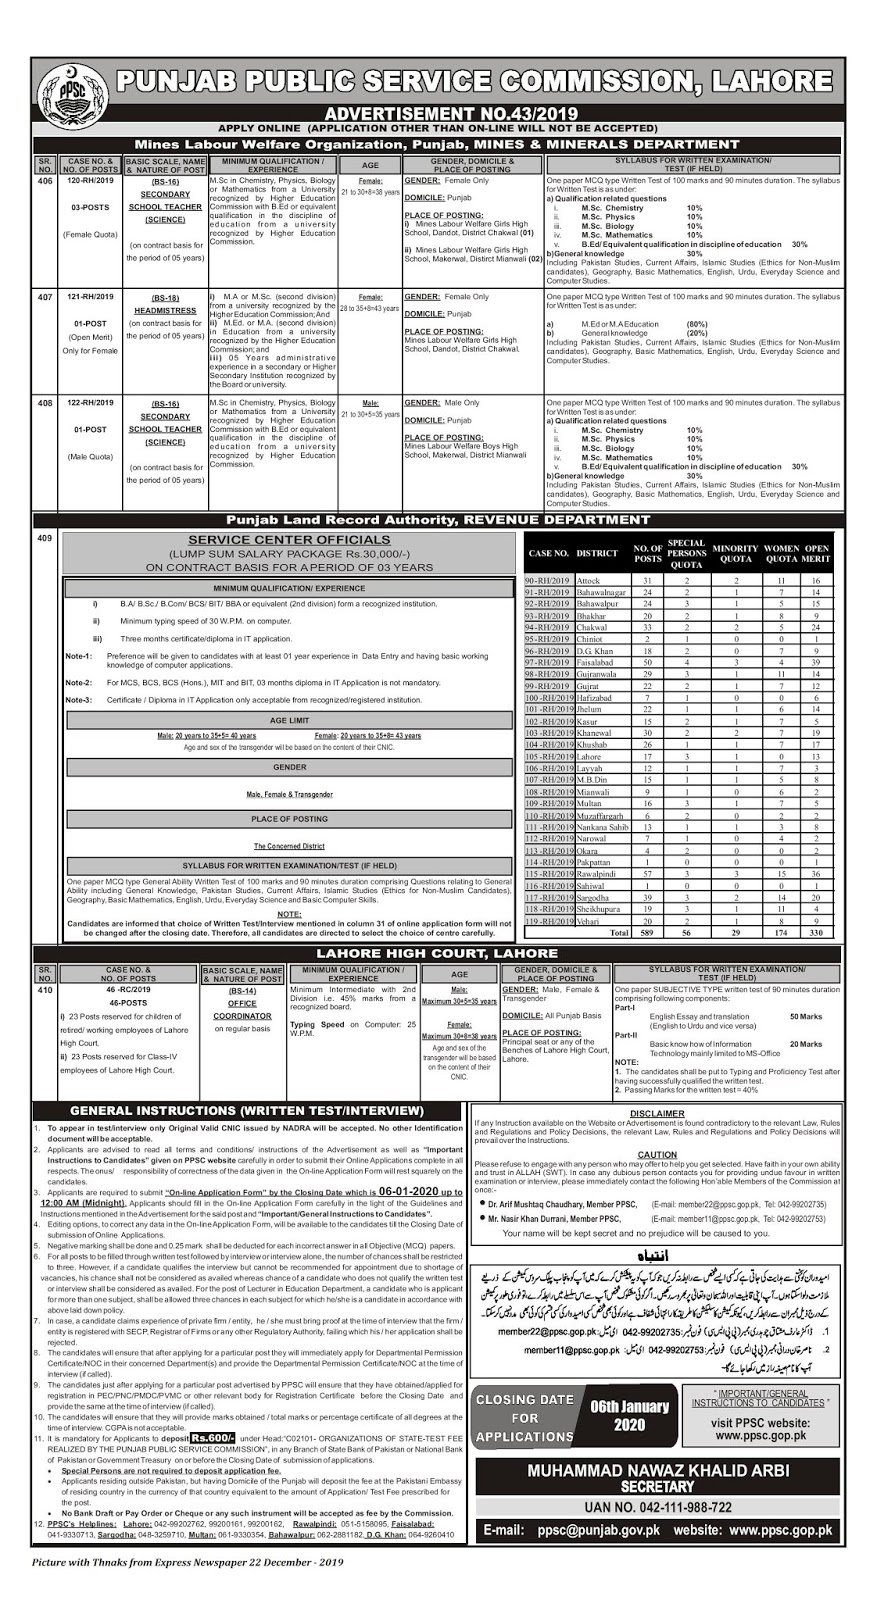 PPSC Jobs 2020   Latest Jobs in Punjab Public Service Advertisement No. 43 2019